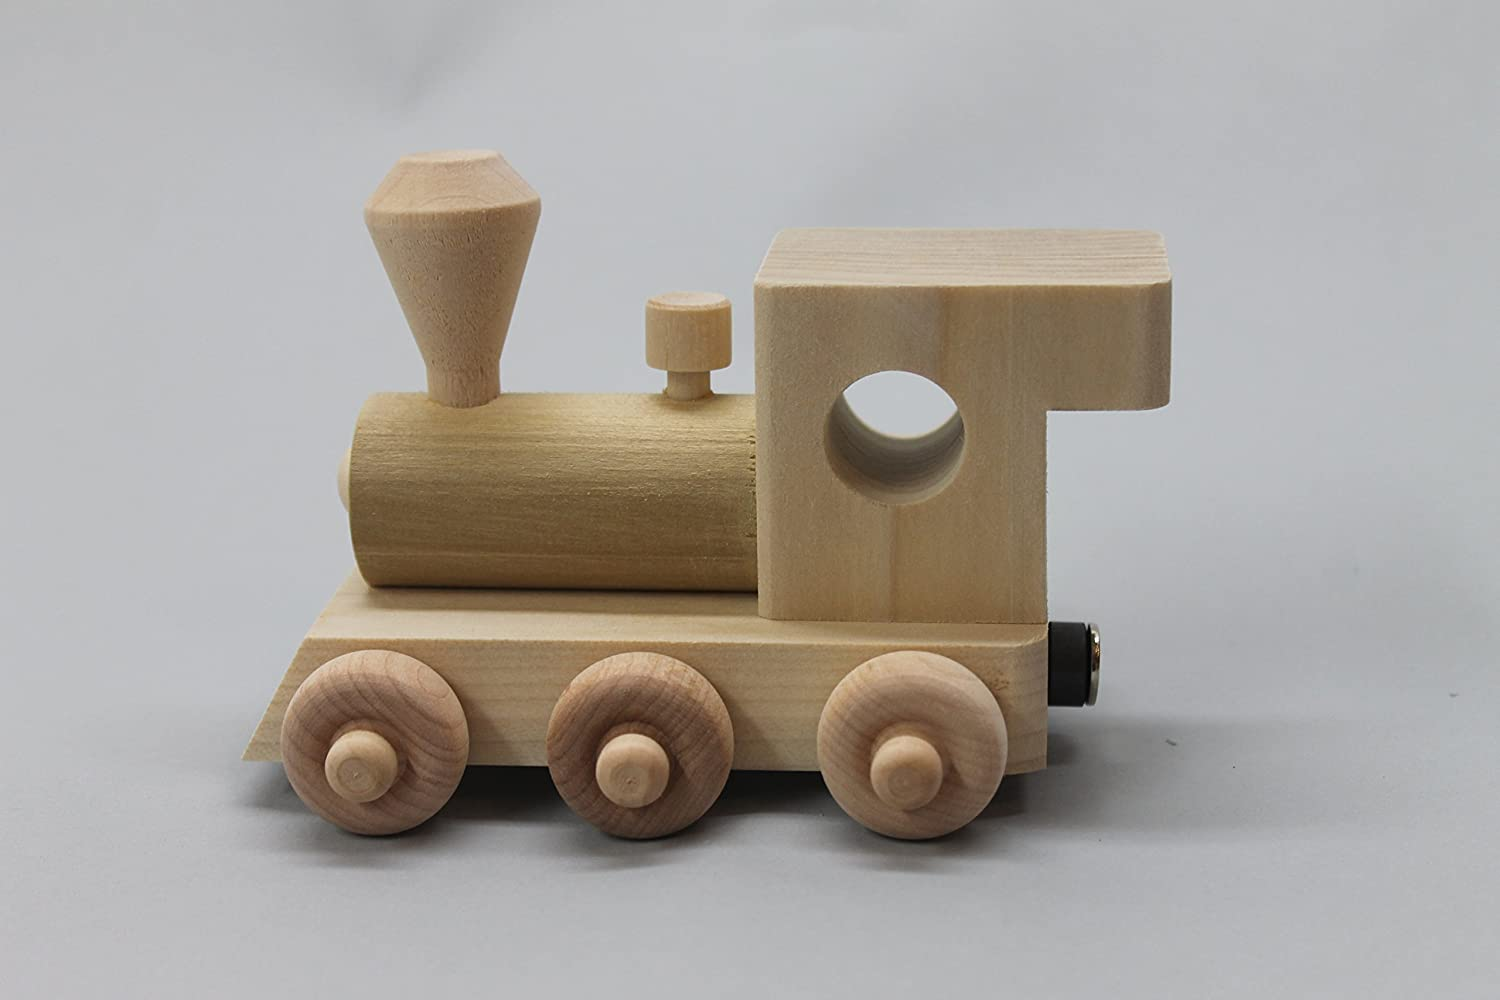 5 letter cars Personalized childs toy wooden train with engine and caboose